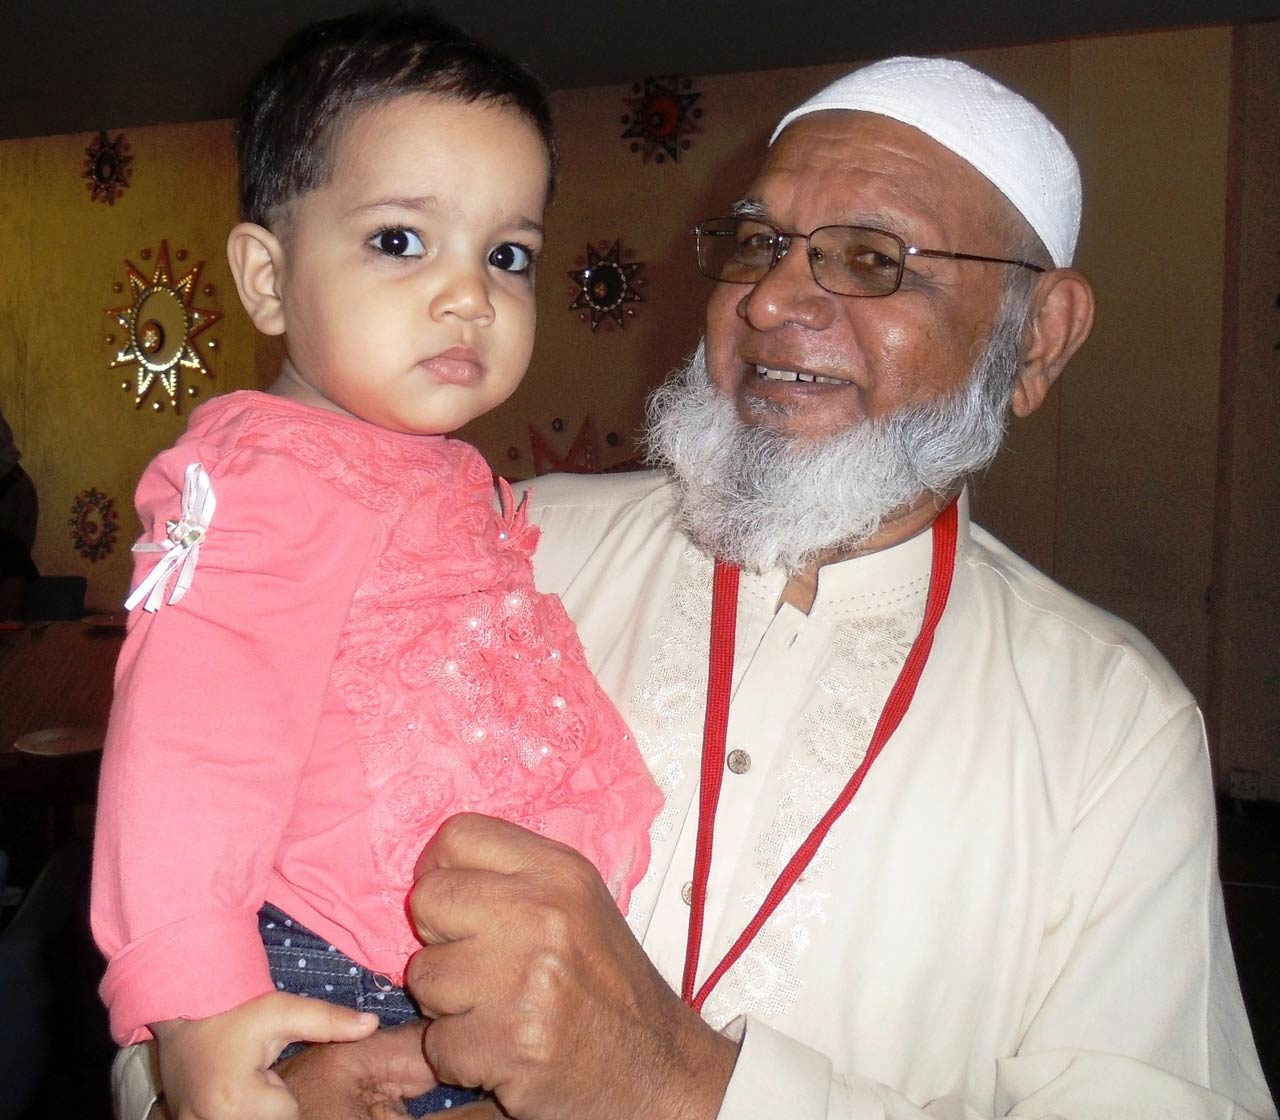 Atauddin Qureshi with his grand daughter